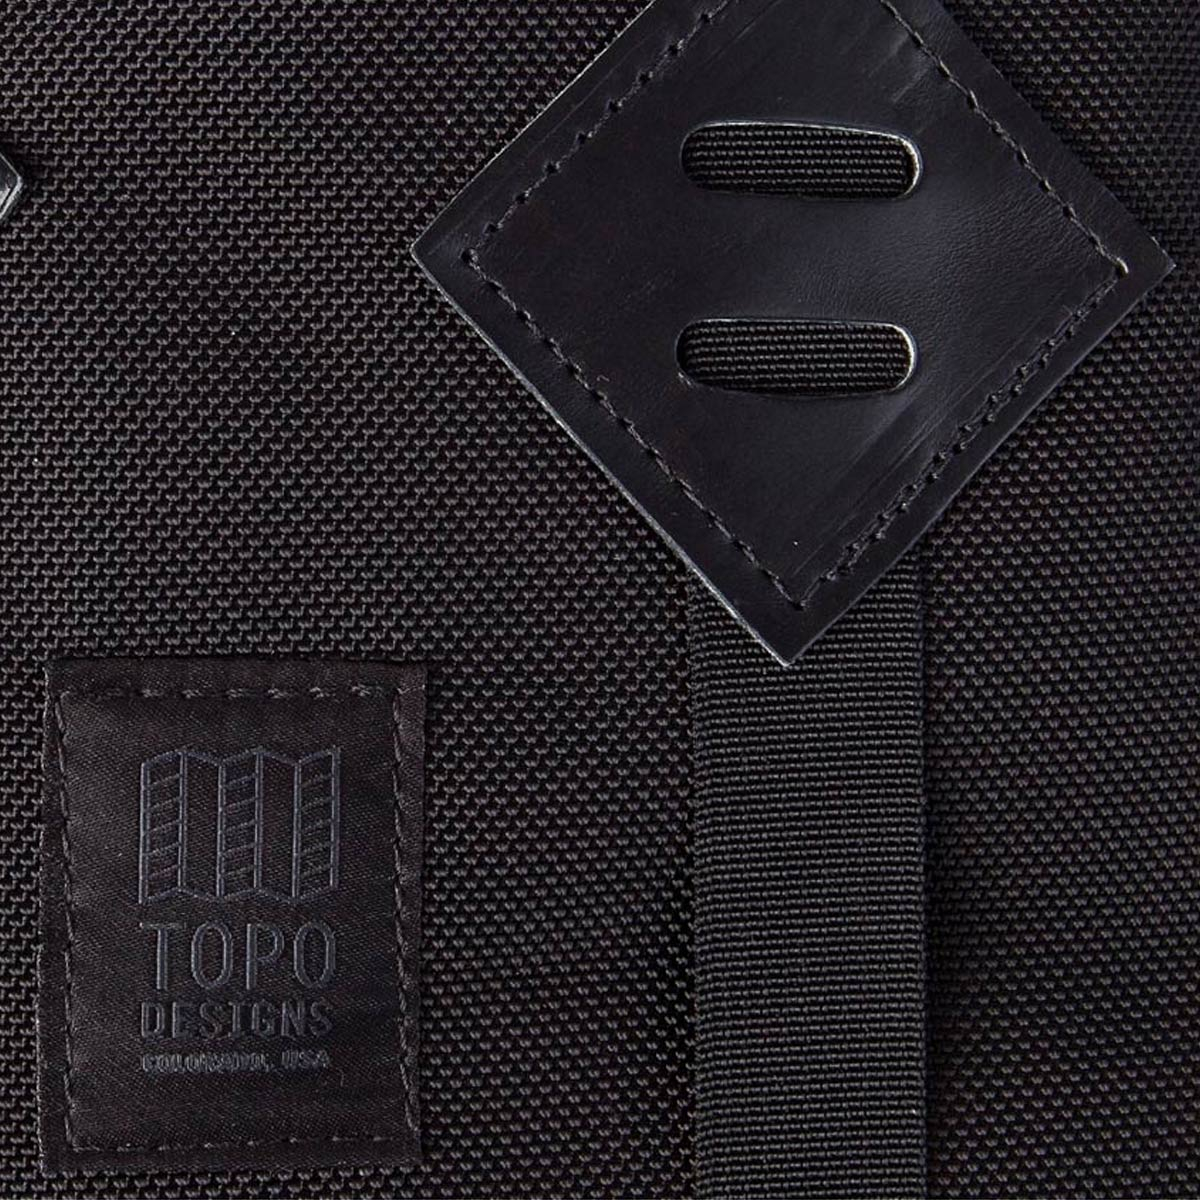 Topo Designs Klettersack Ballistic/Black Leather Lifestyle, ballistic backpack for men and women